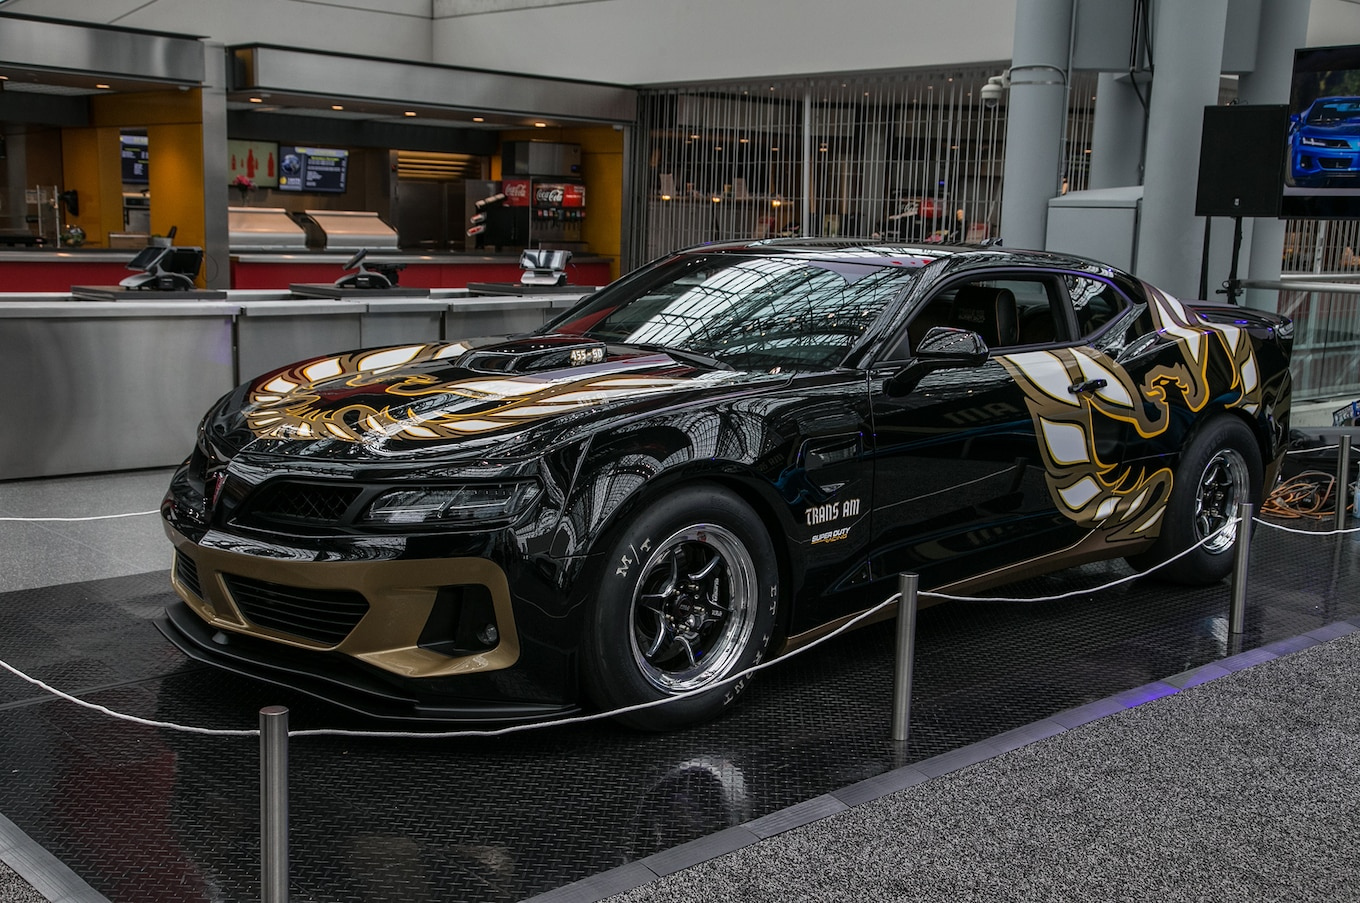 96 The Best 2019 Pontiac Trans Am Model